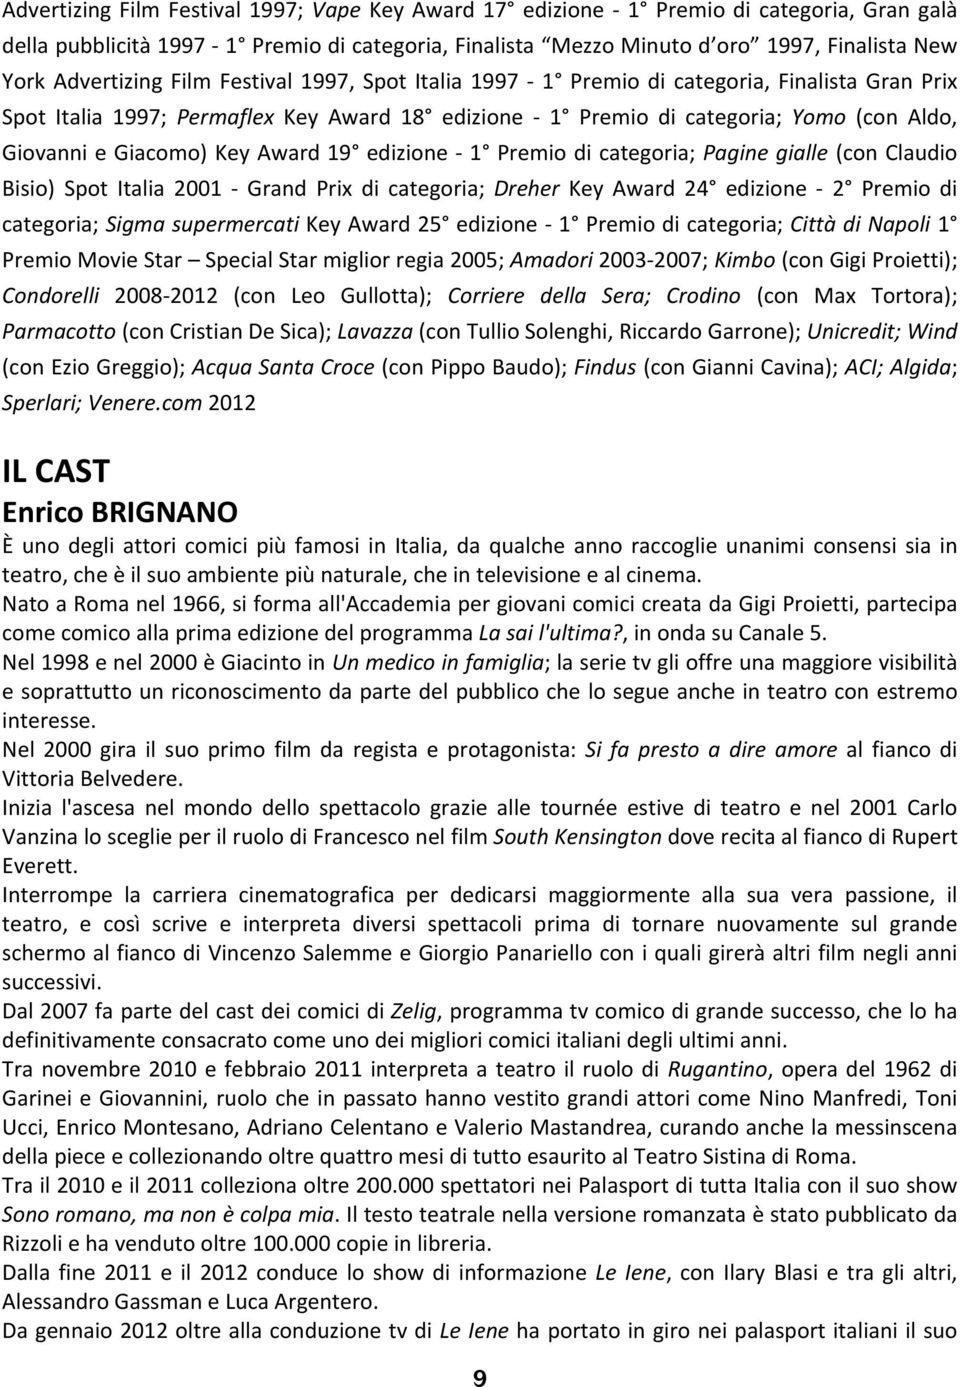 Giacomo) Key Award 19 edizione 1 Premio di categoria; Pagine gialle (con Claudio Bisio) Spot Italia 2001 Grand Prix di categoria; Dreher Key Award 24 edizione 2 Premio di categoria; Sigma